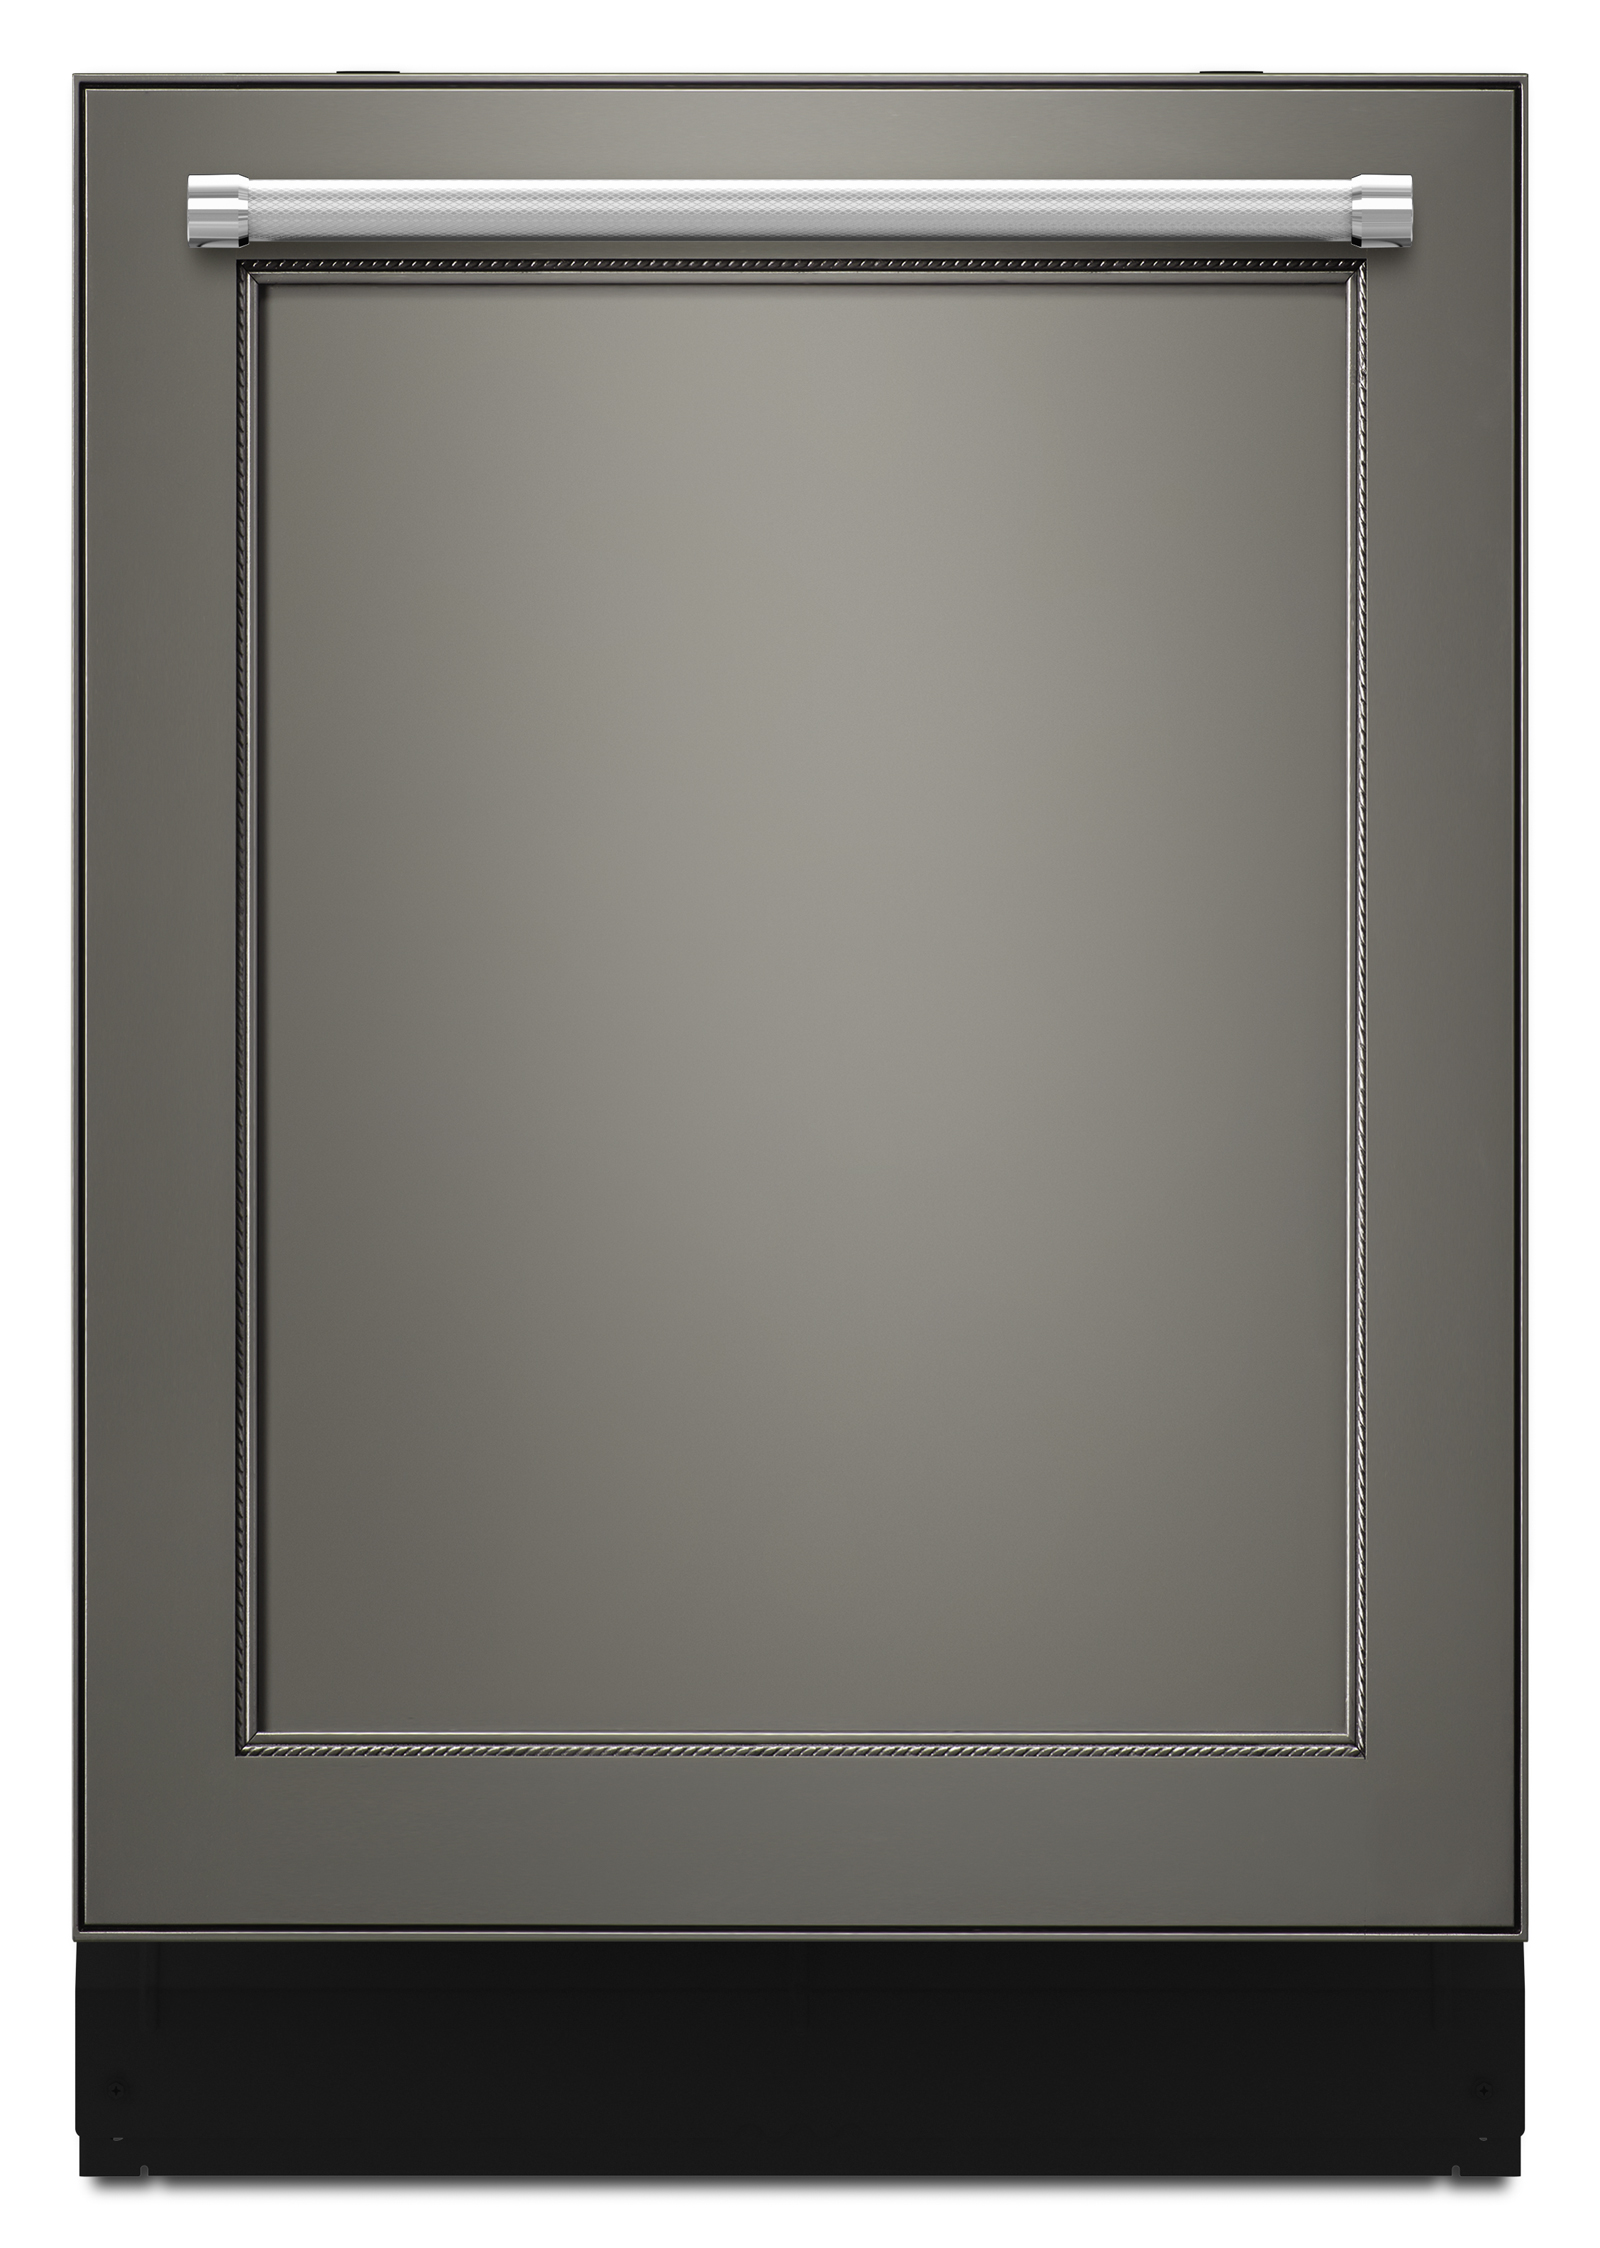 KDTE204EPA-24-Top-Control-Built-In-Dishwasher-Panel-Ready